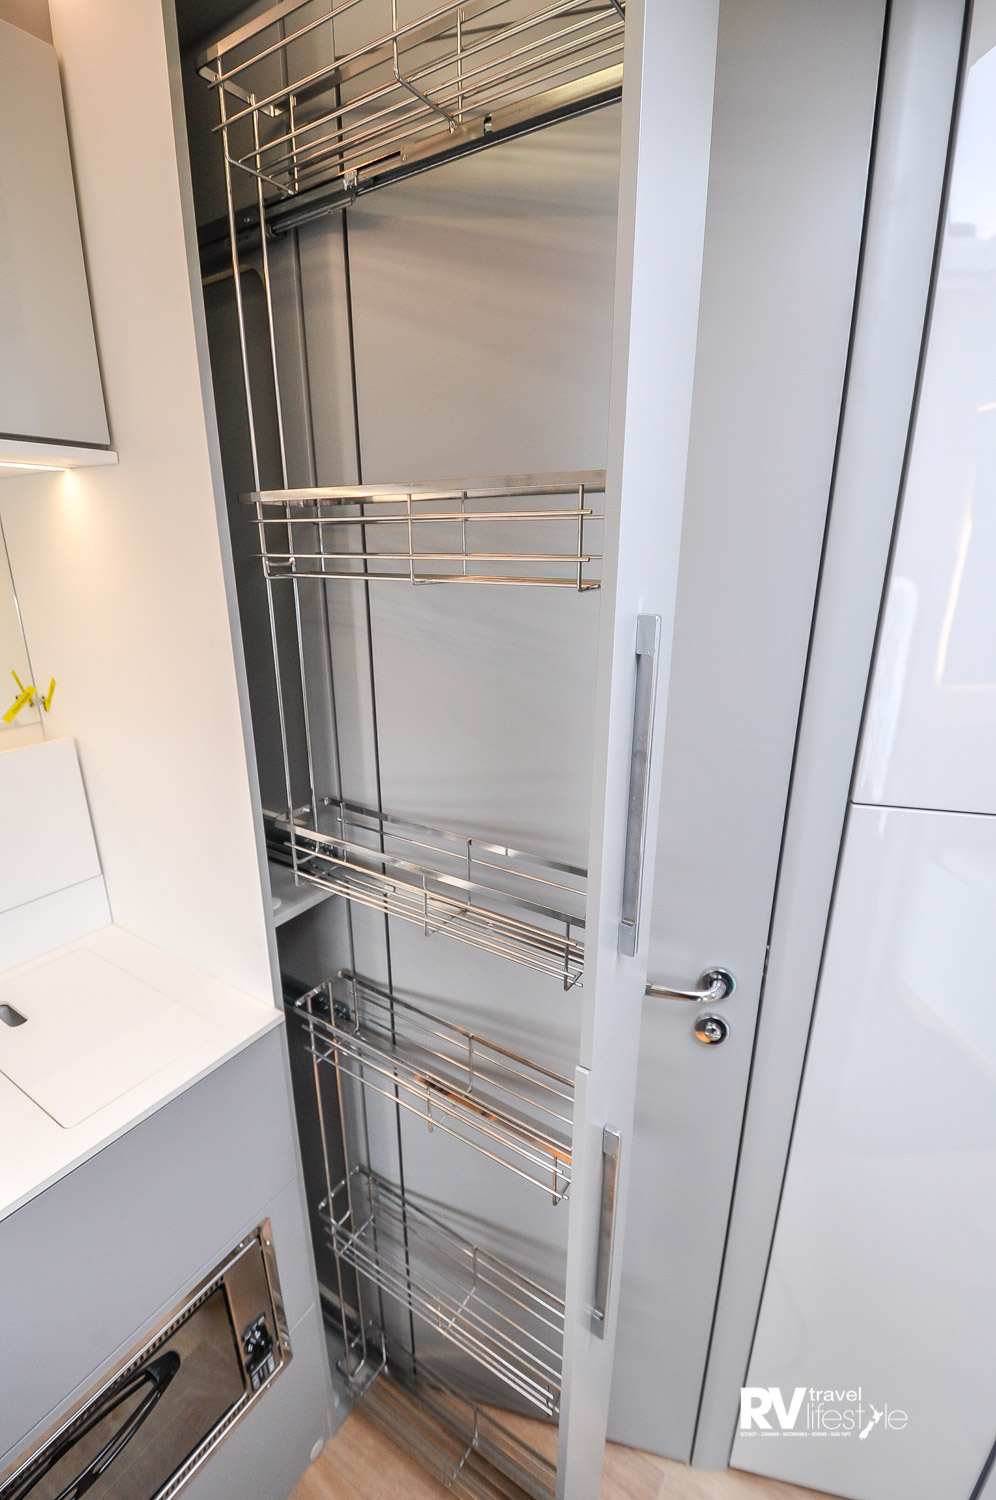 Check out this full height pull-out pantry unit, very sleek. The bathroom door shows behind it